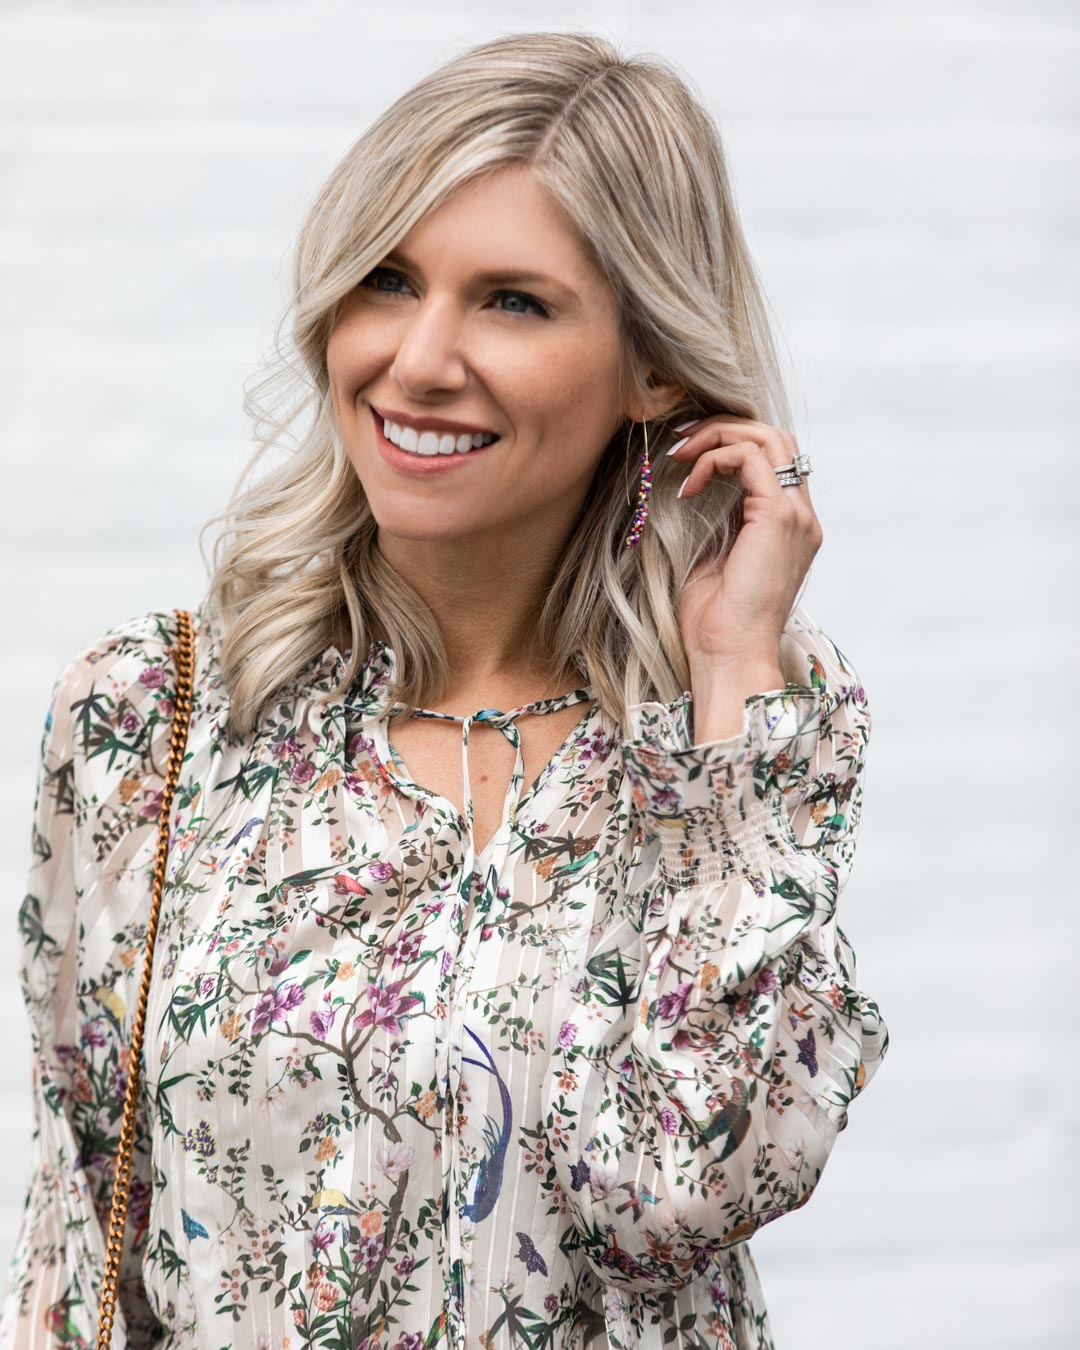 Floral Top for Spring